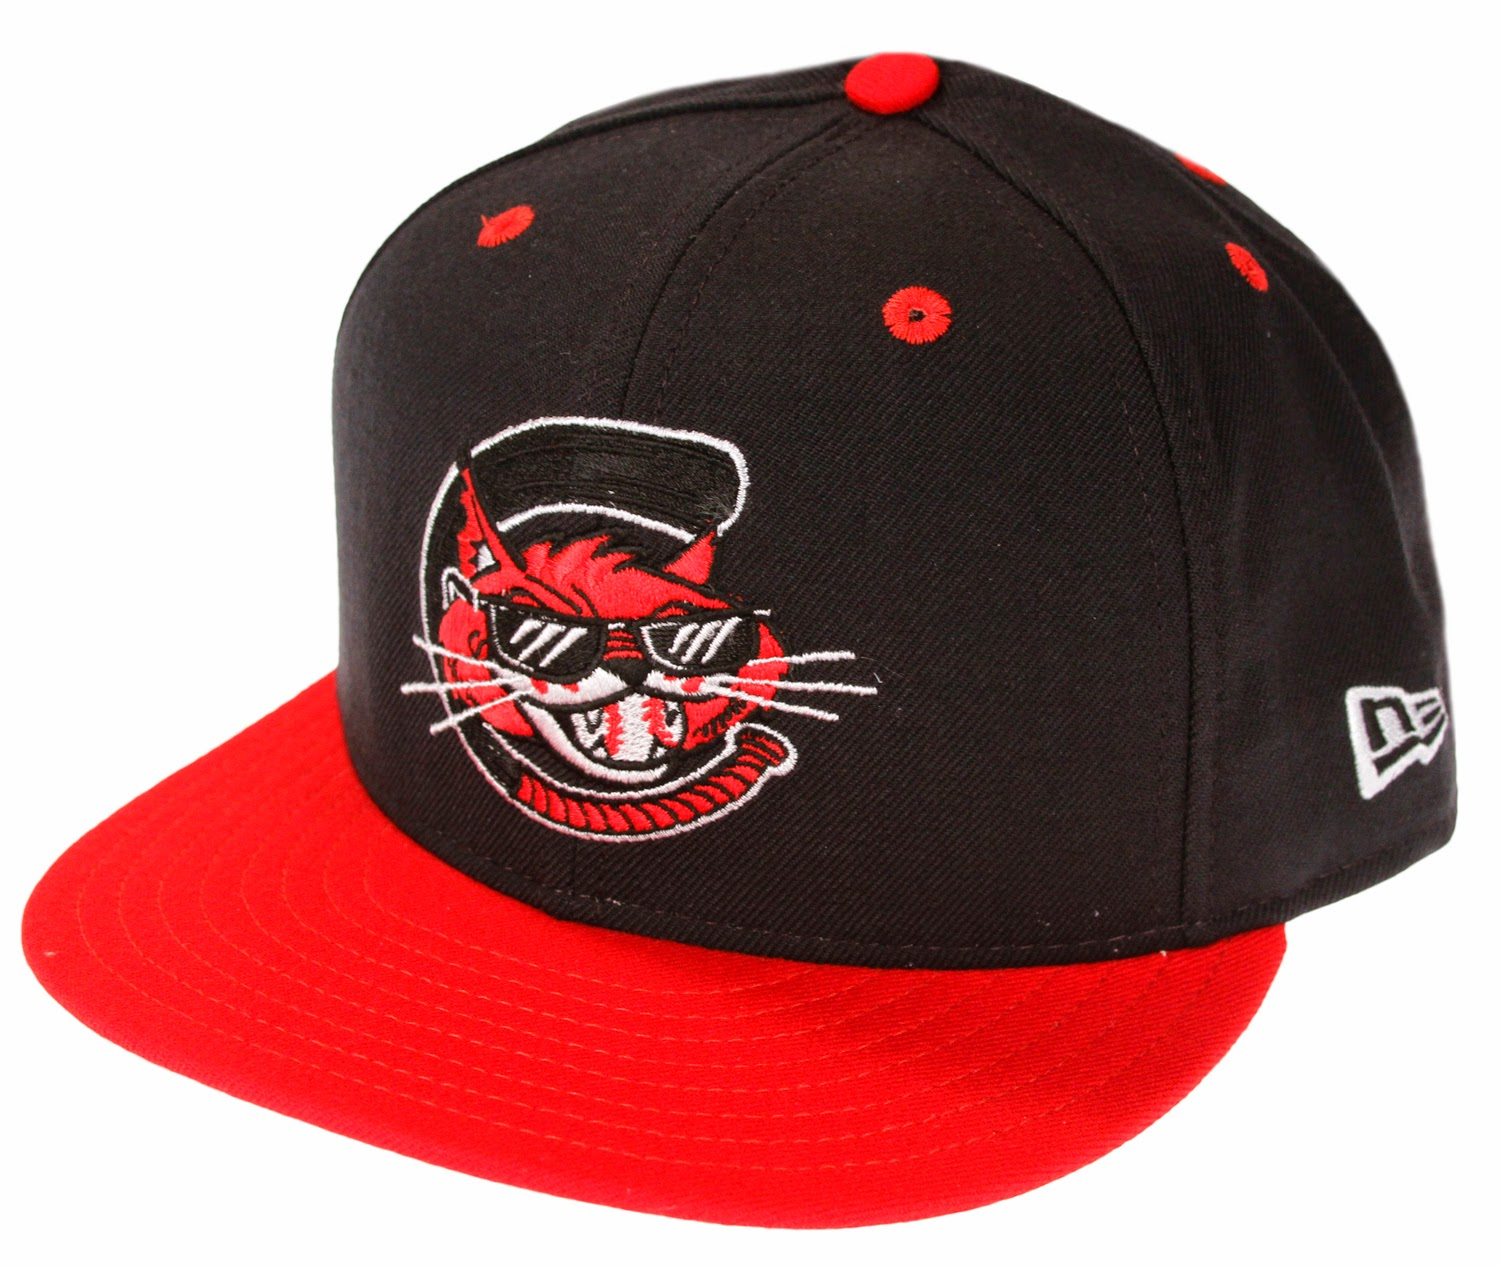 new era milb minor league charleston alley cats baseball